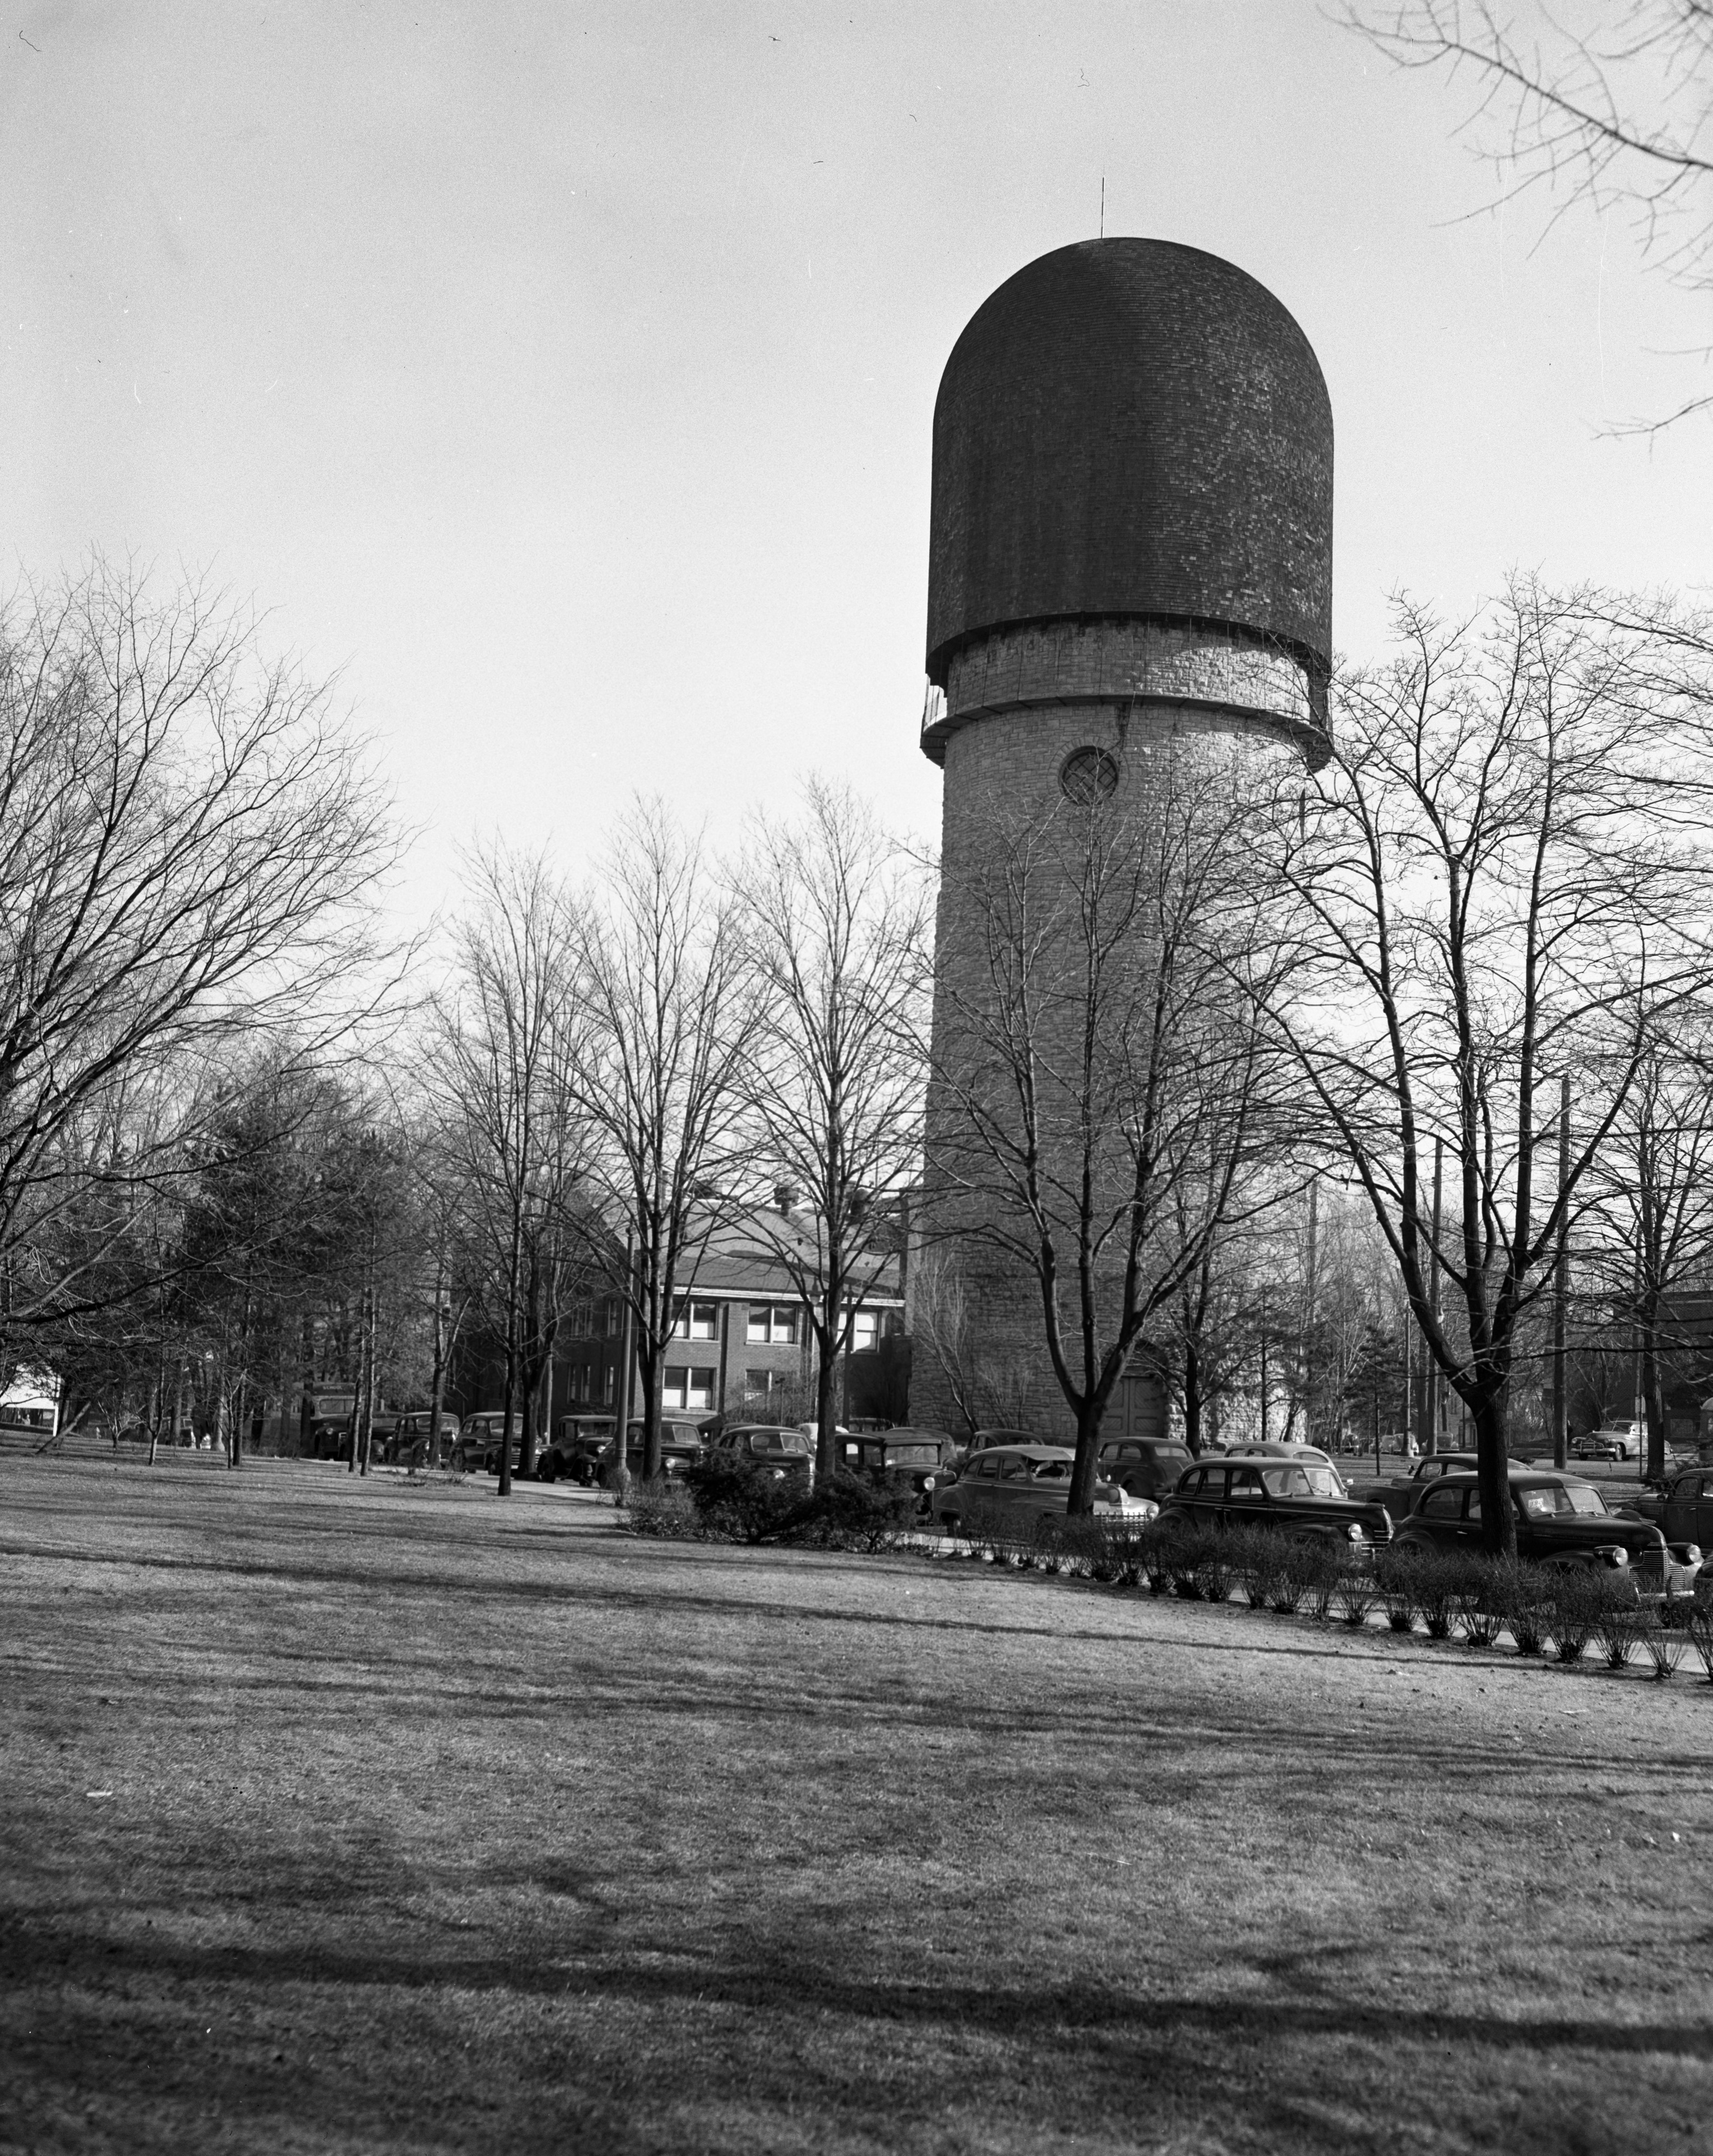 Ypsilanti Water Tower, January 1949 image